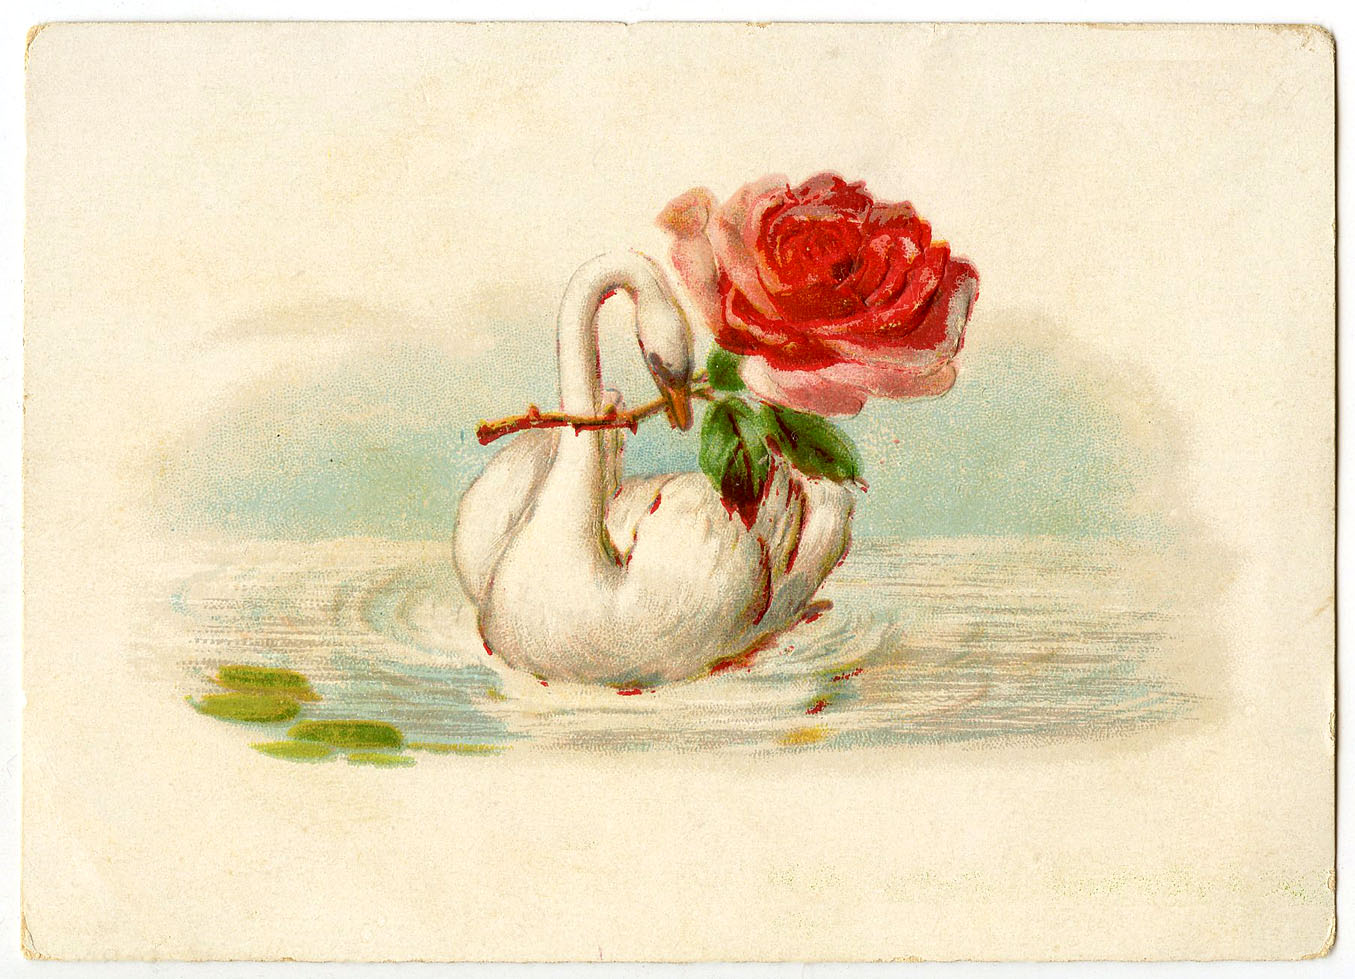 http://thegraphicsfairy.com/wp-content/uploads/2013/05/Vintage-Swan-Rose-GraphicsFairy3.jpg